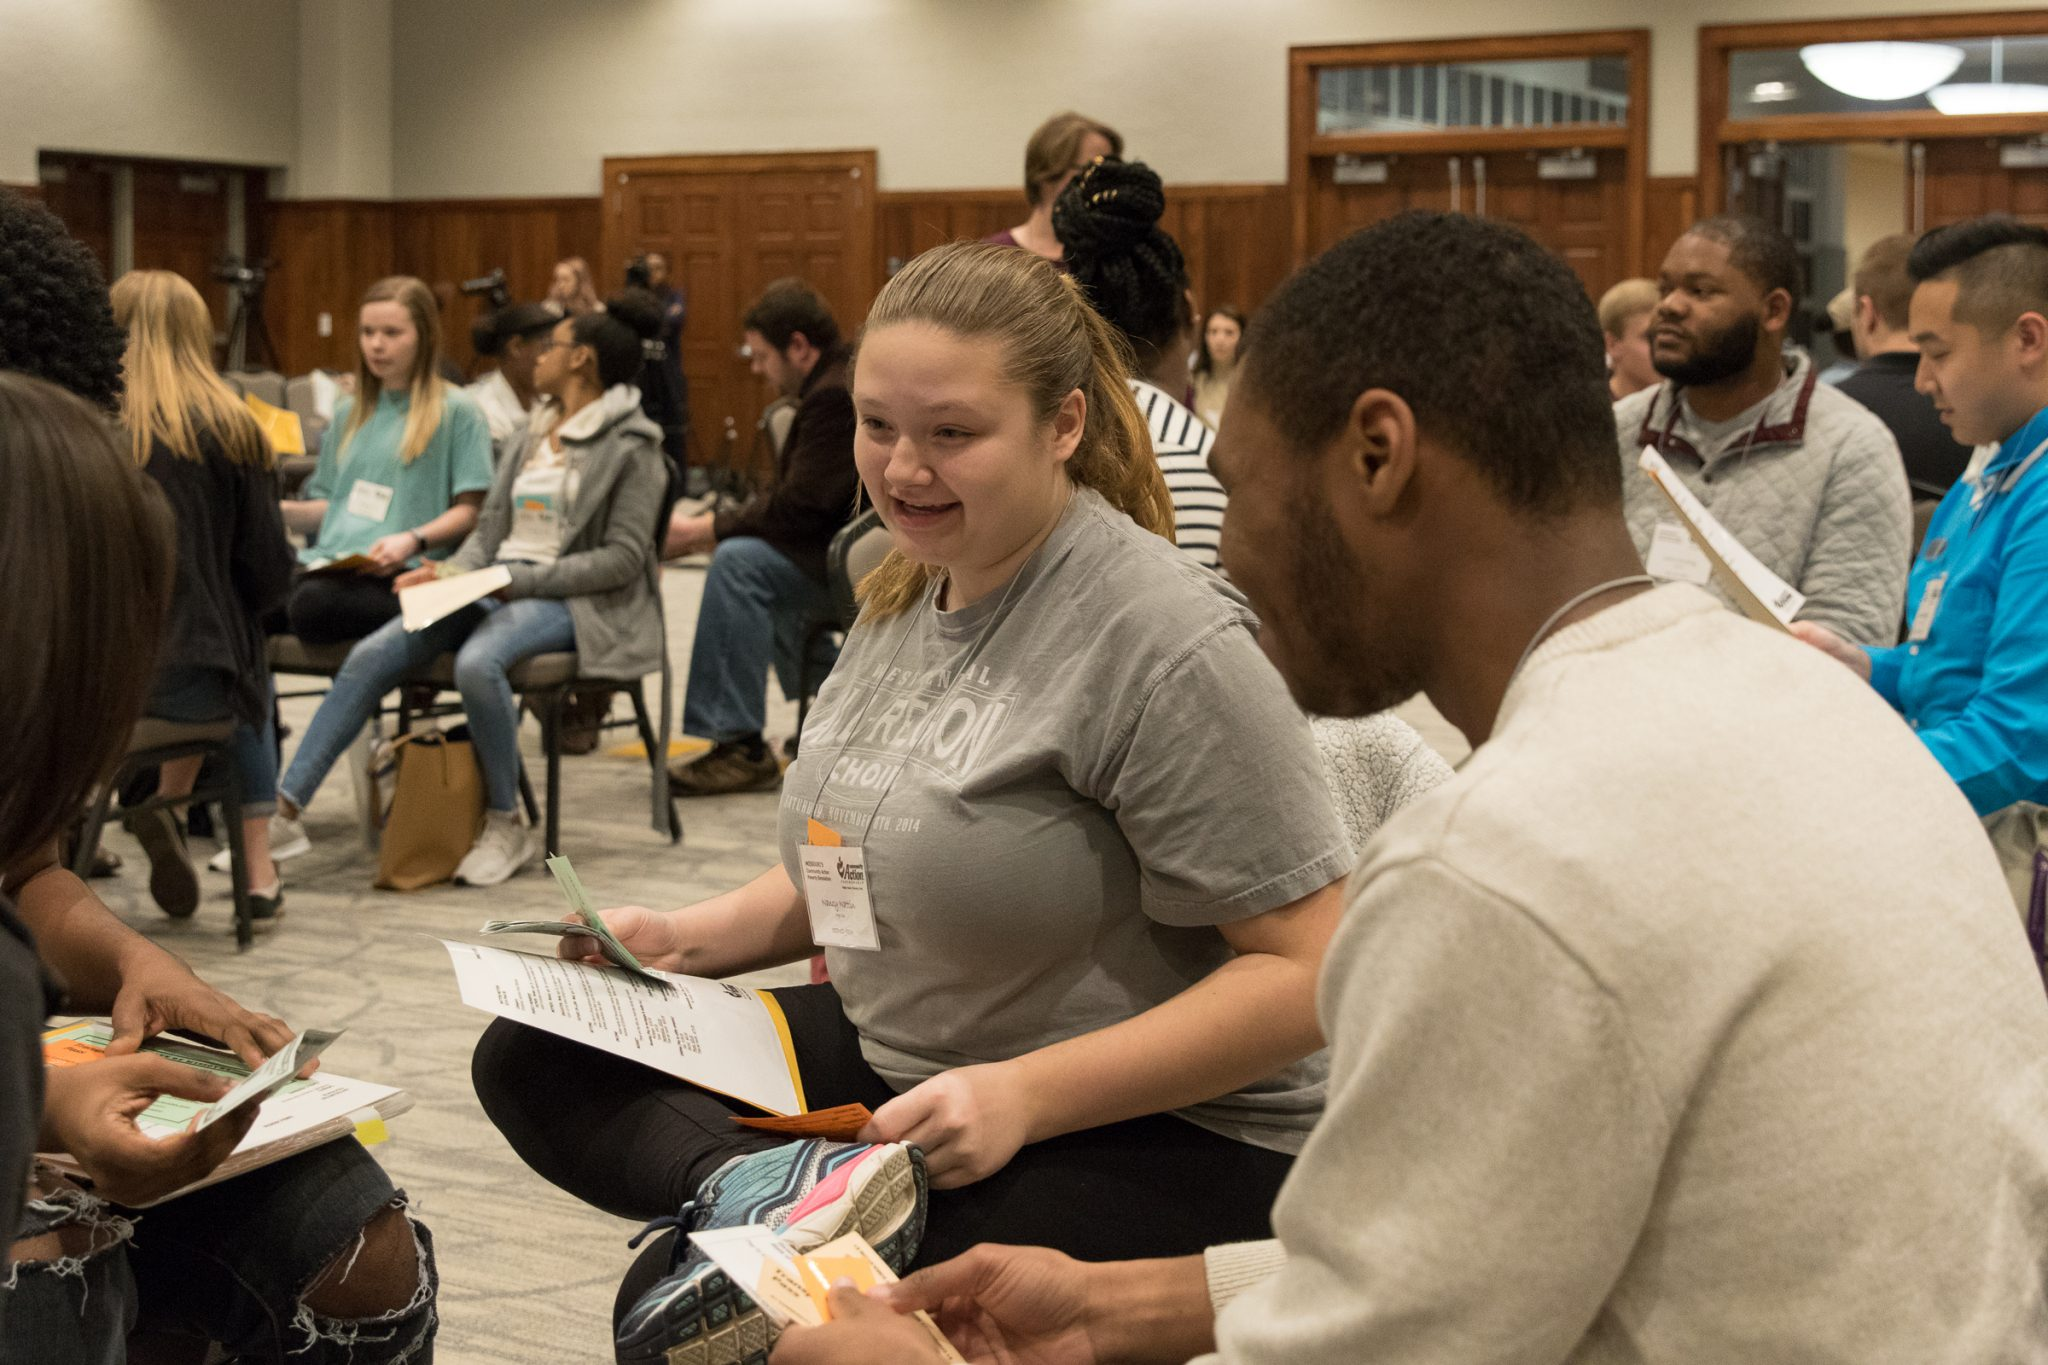 Youth participants taking part in poverty simulations at UCA.